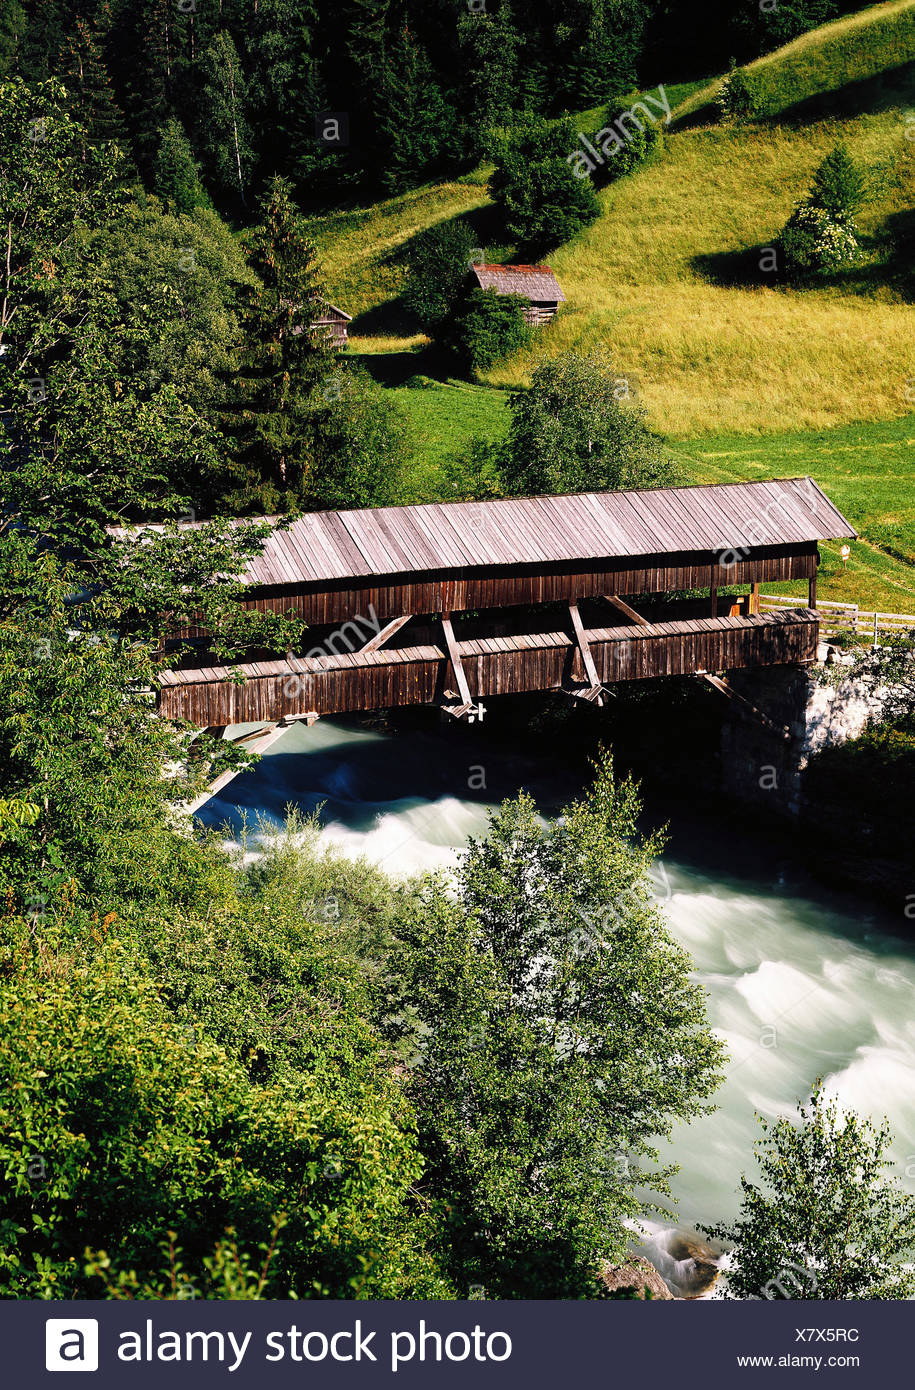 geography / travel Austria, Tyrol, landscapes, Sanna, near Pians, Arlberg, old roofed wooden bridge, Additional-Rights-Clearance-Info-Not-Available - Stock Image